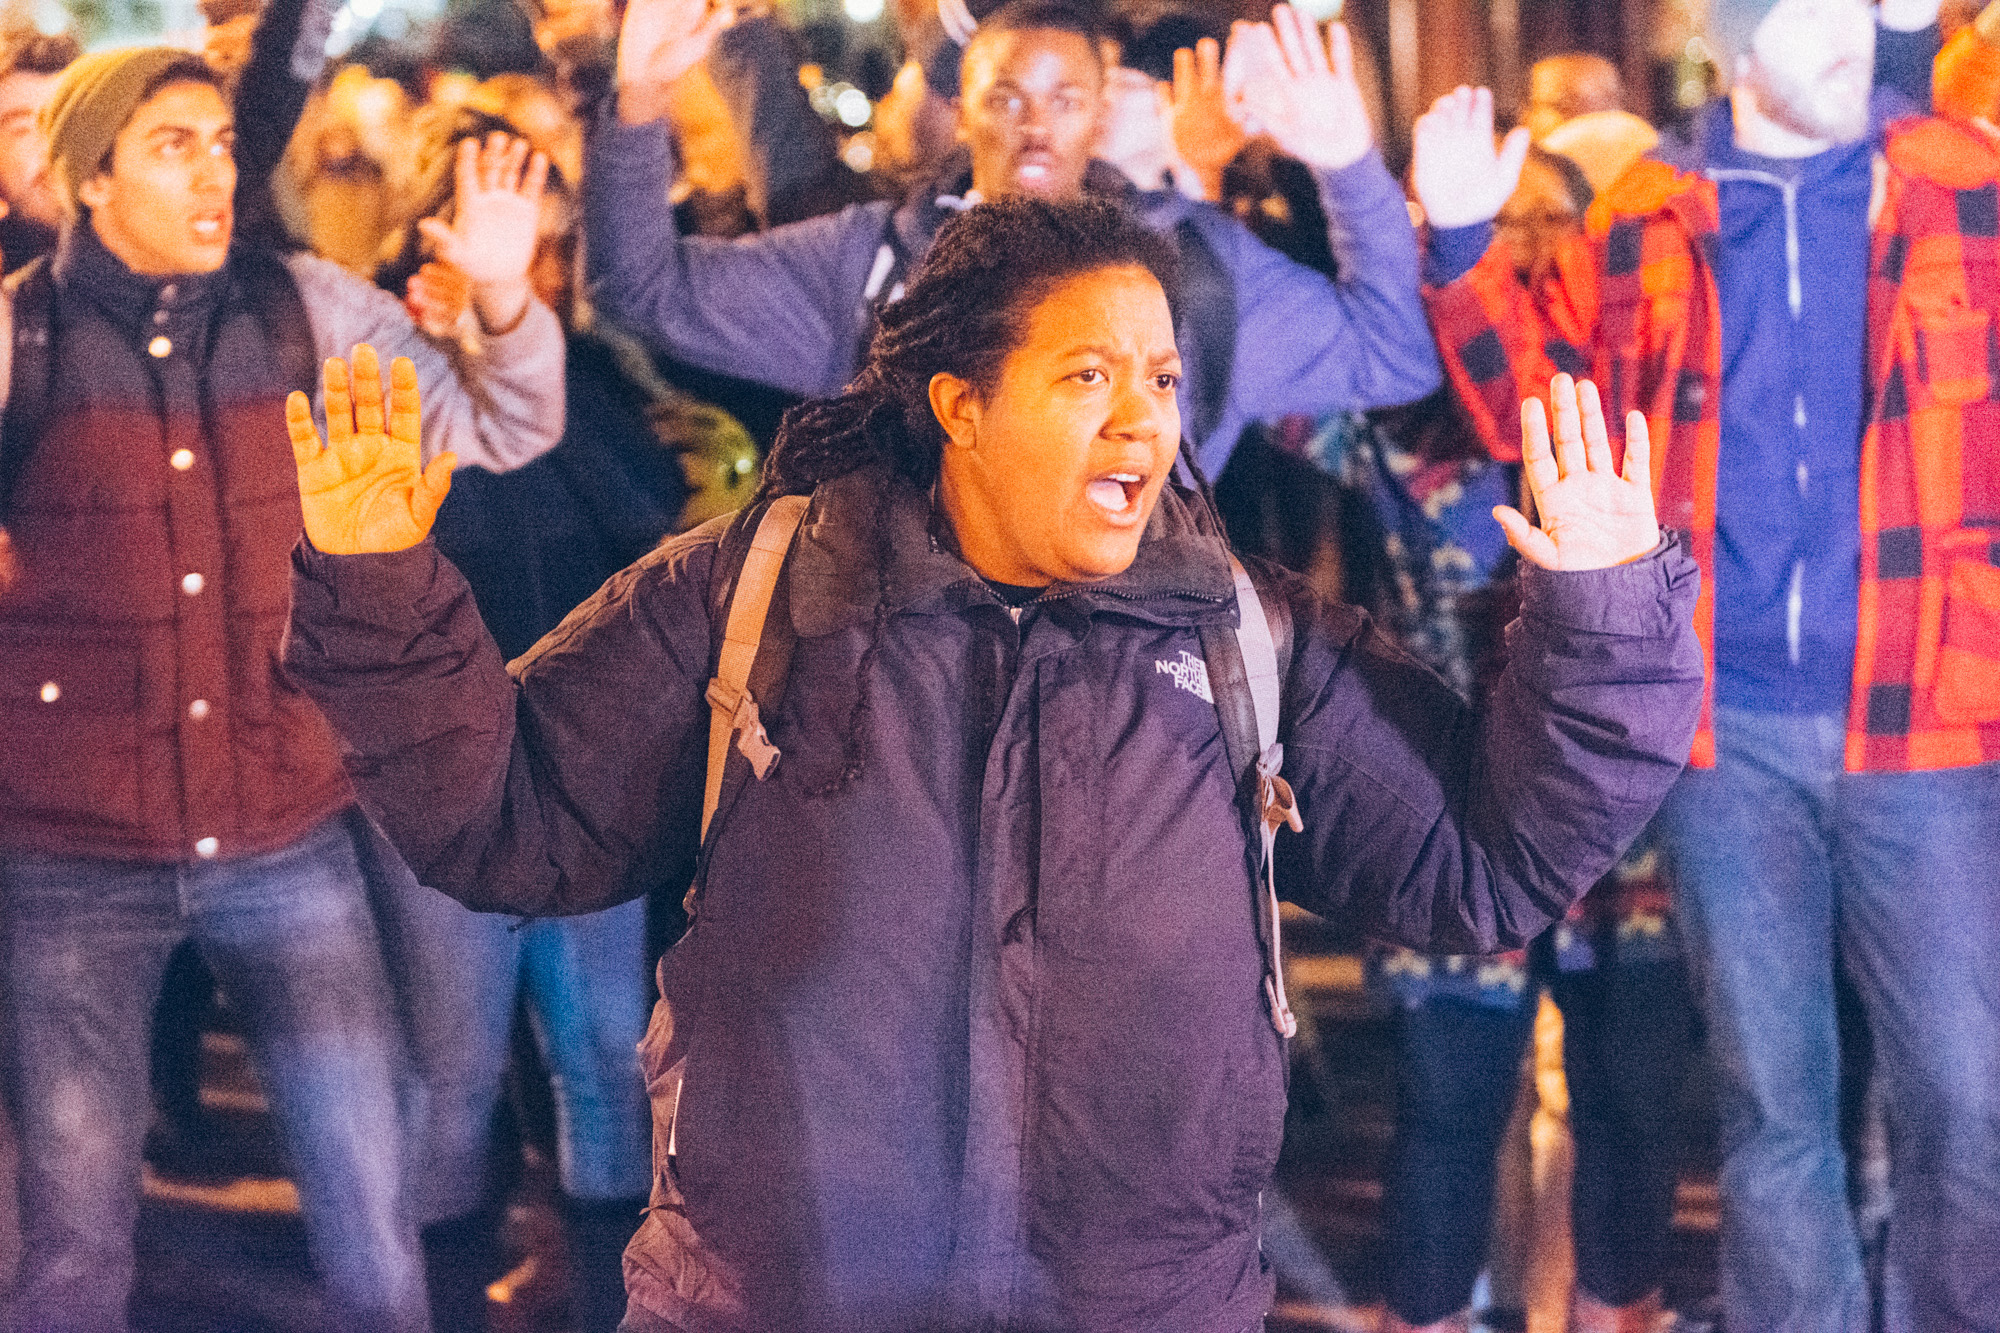 """The march stopped right before entering the intersection in the """"Hands-up, don't shoot"""" pose that has become iconic with this movement."""